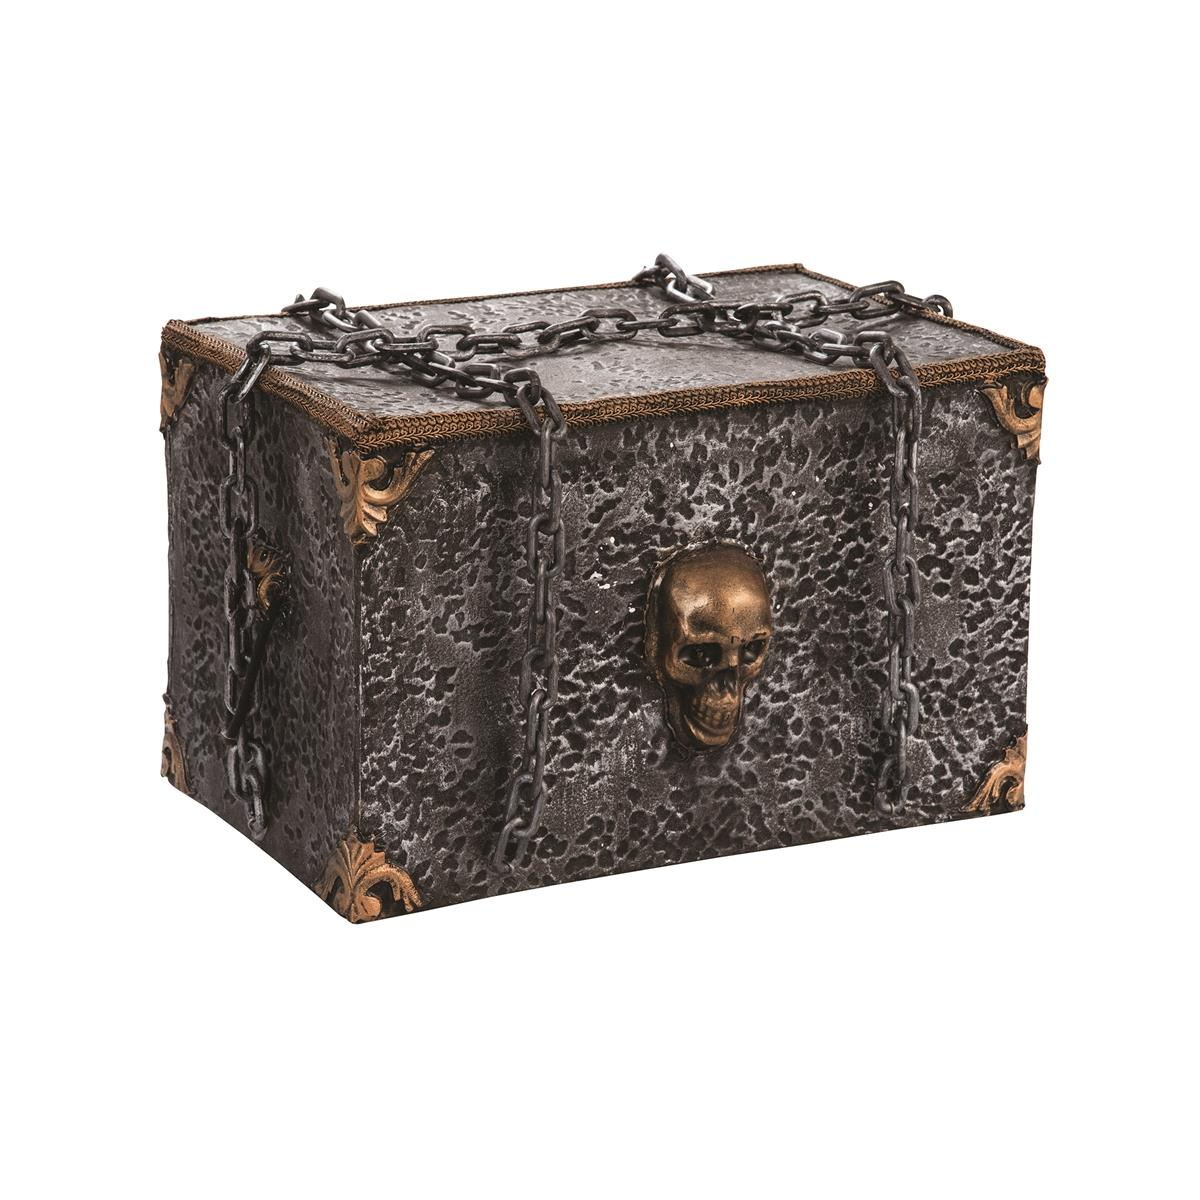 Sound & Motion Haunted Chest